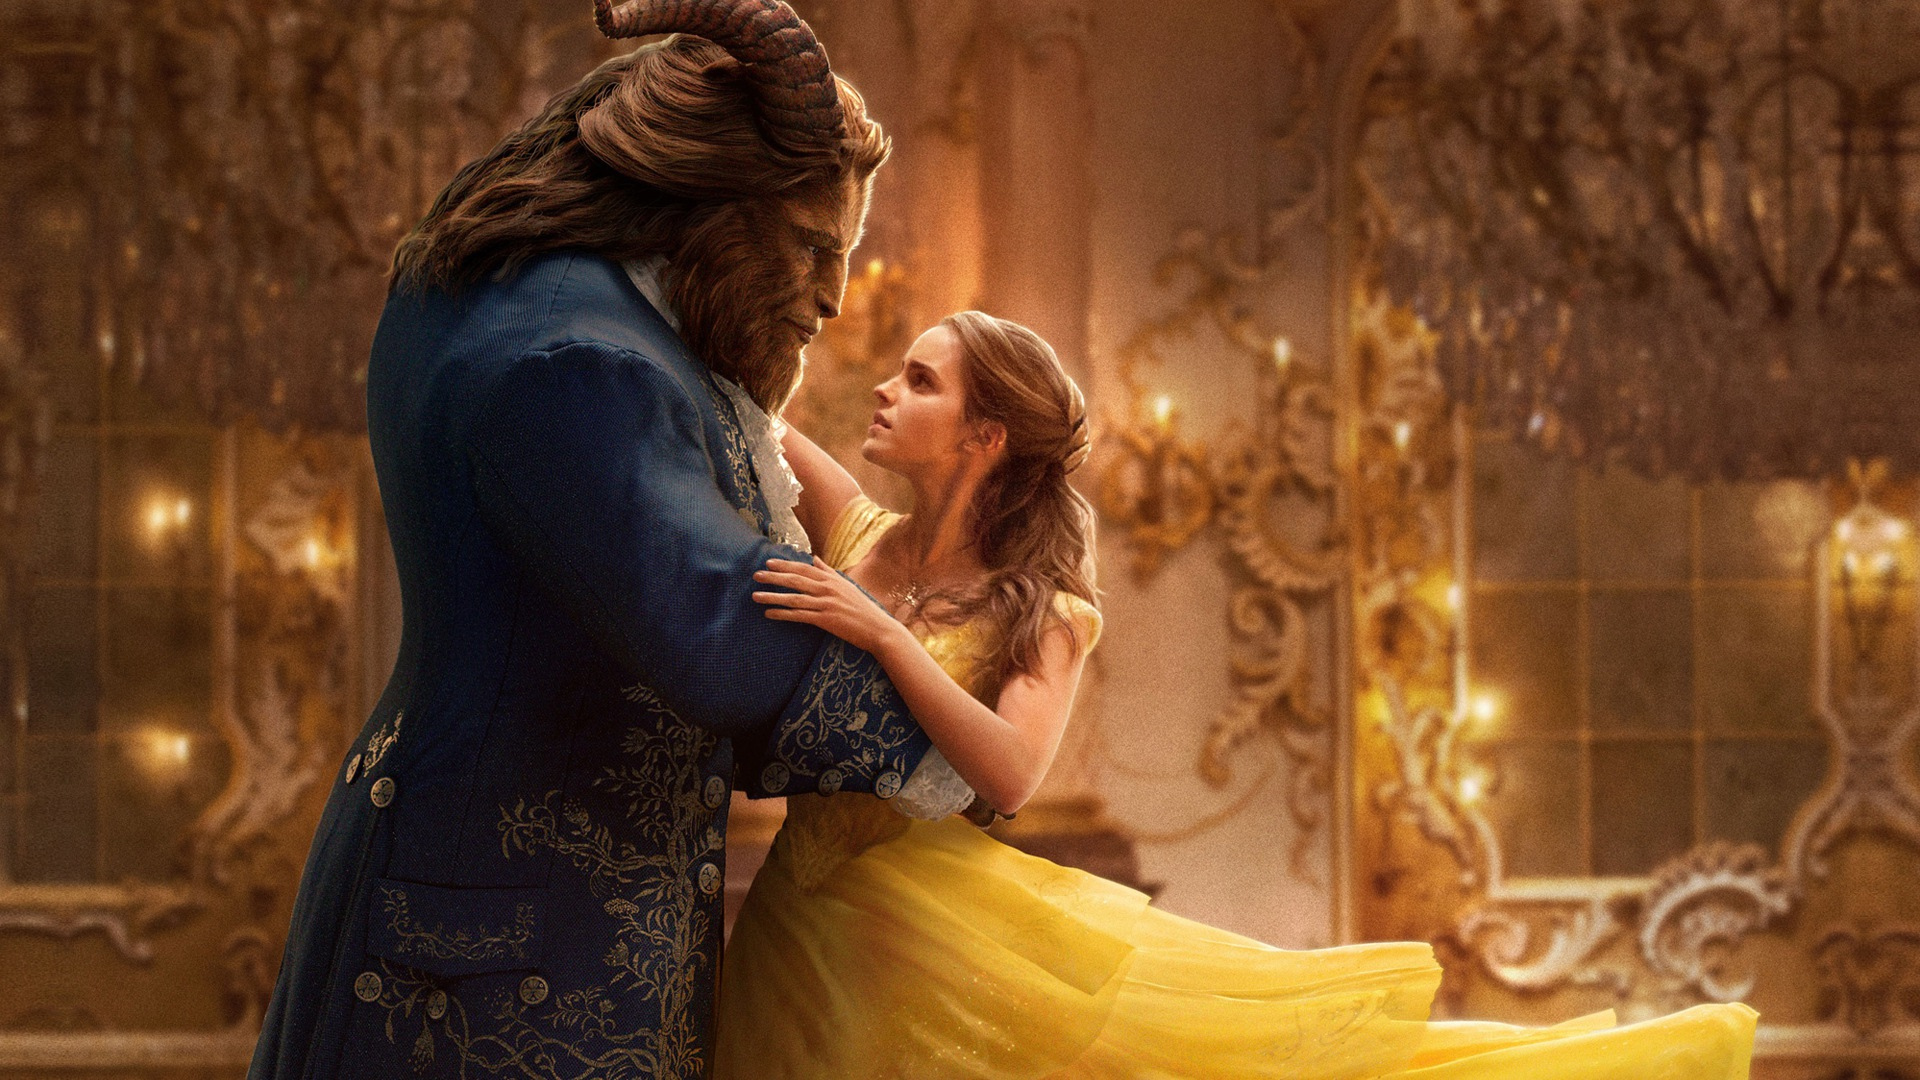 beauty and the beast emma watson Top 12 Hollywood Movies to Look Forward to in 2017